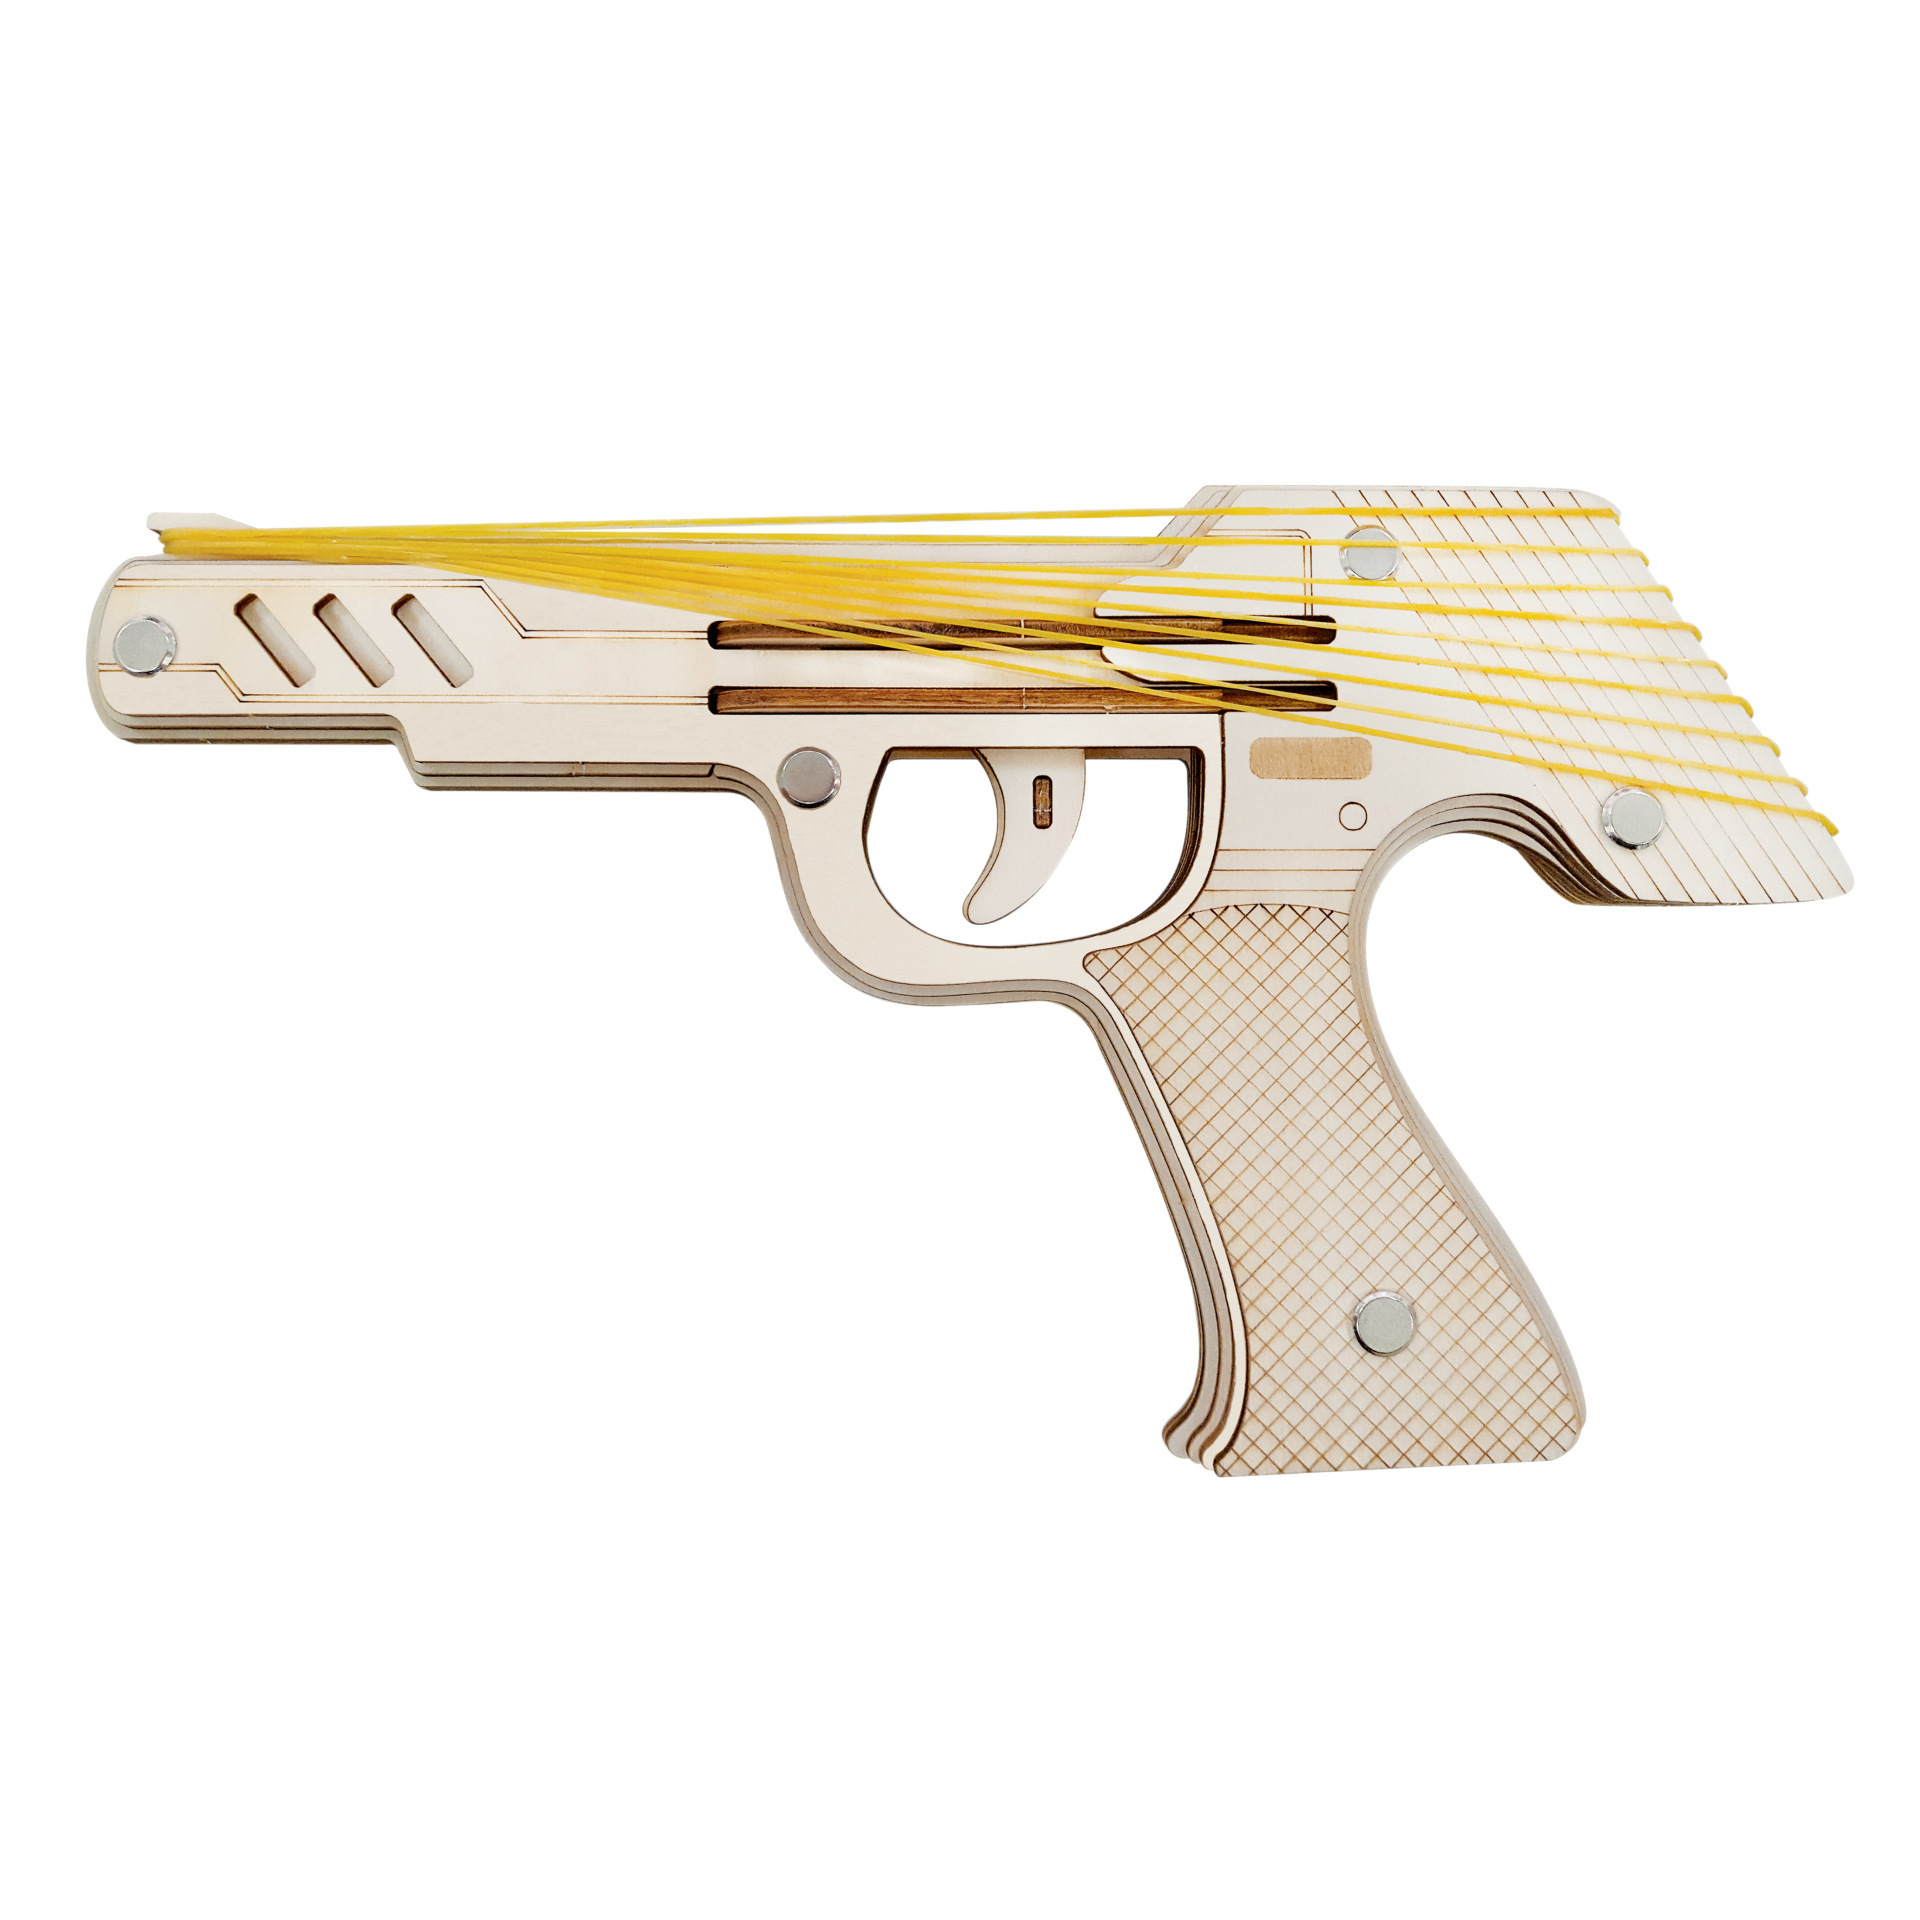 Laser Cutting DIY 3D Wooden Puzzle Woodcraft Assembly Kit 9 Running Fire Rubber Band Gun For Child Gift ( With 50+ Rubber Bands)